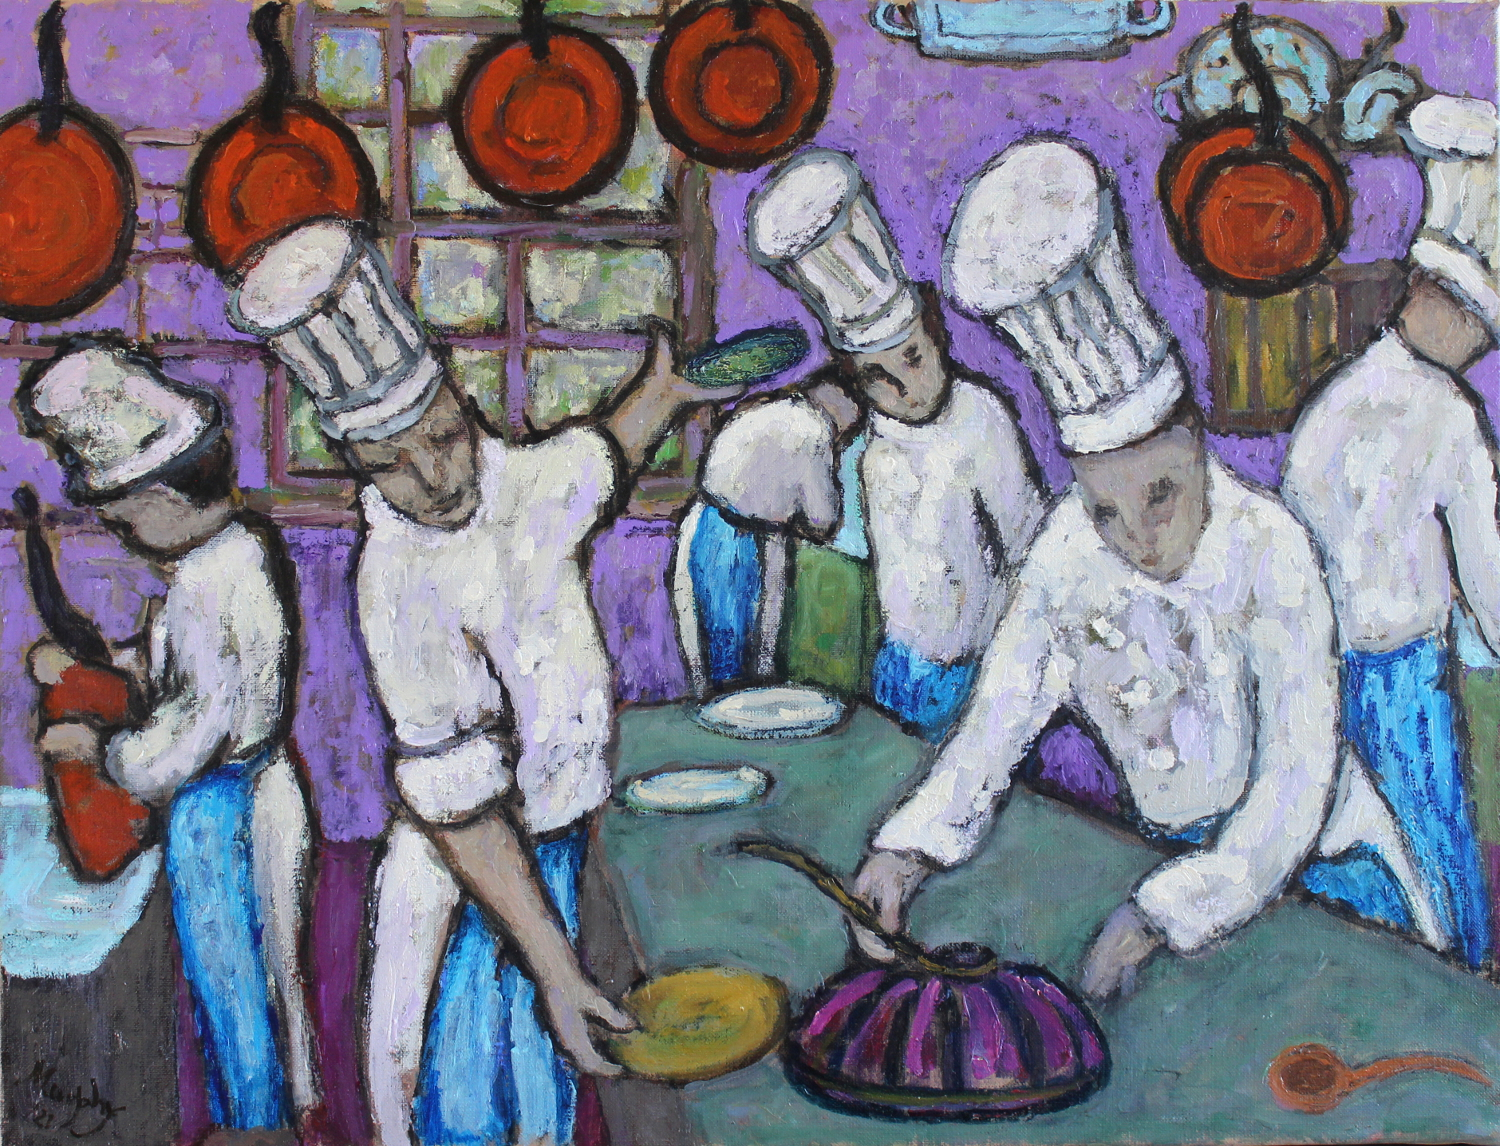 The-Chefs-65-x-50-cm-oil-on-canvas-web